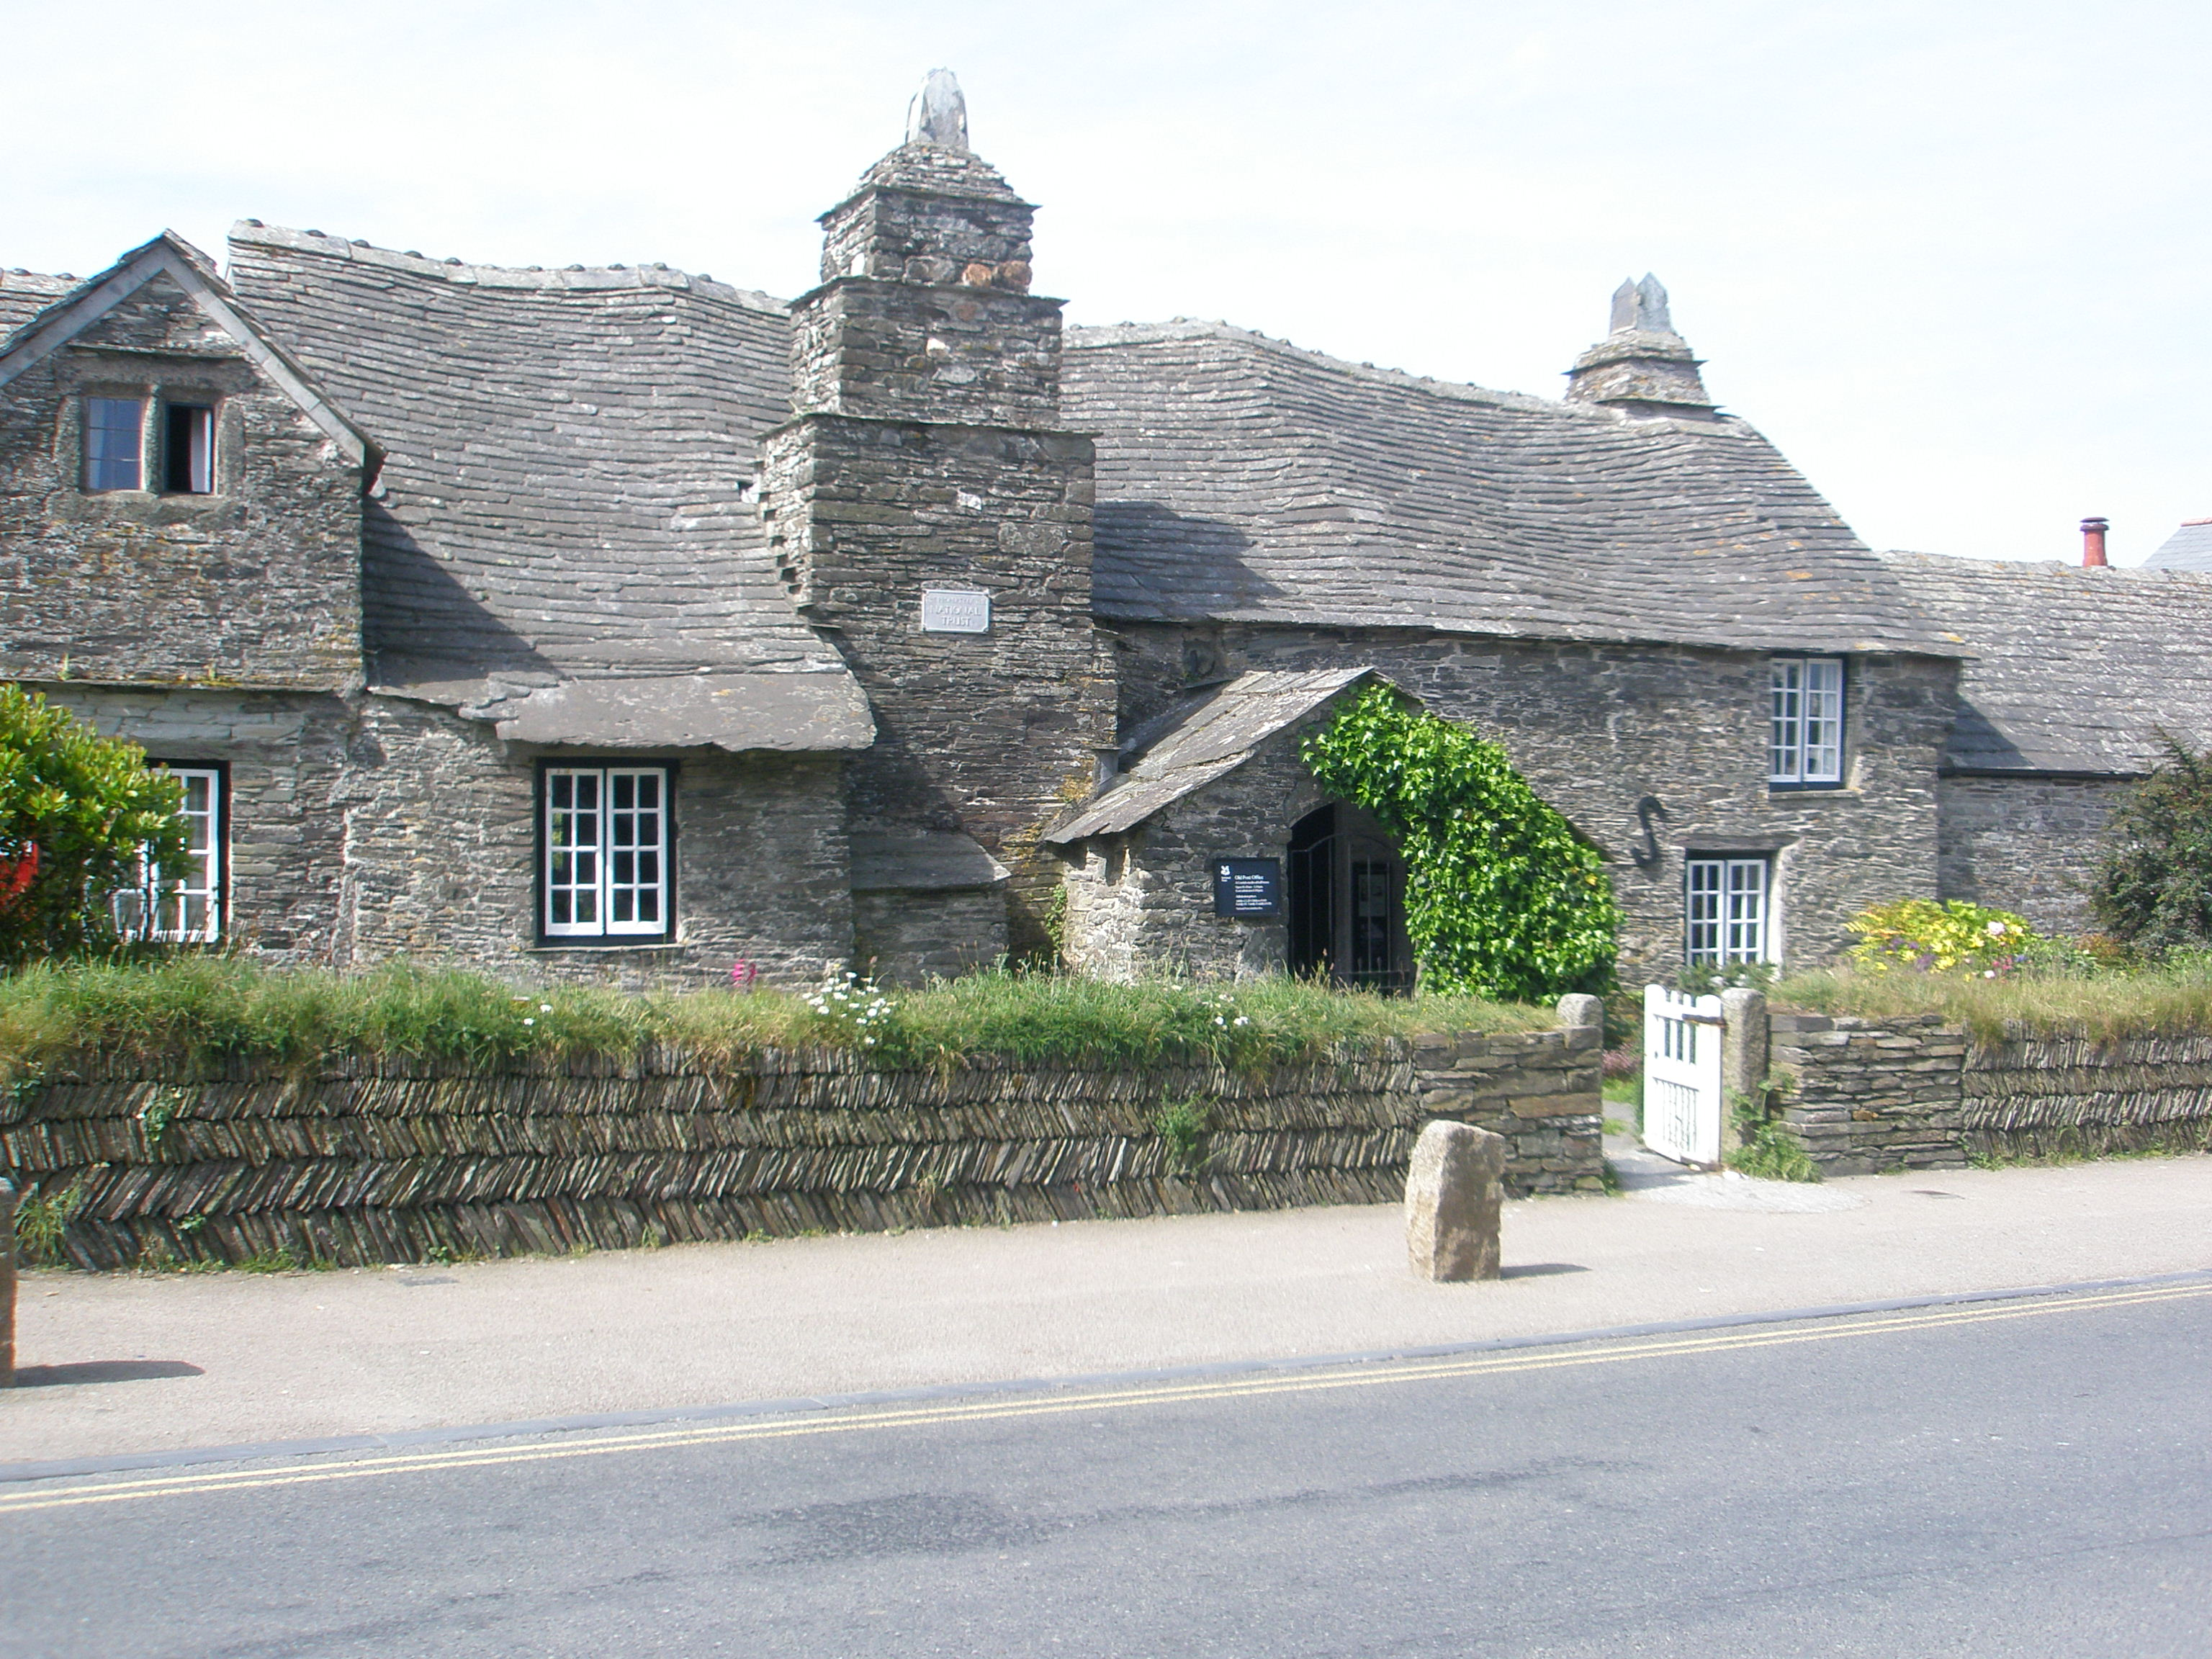 Old Post Office building in Tintagel